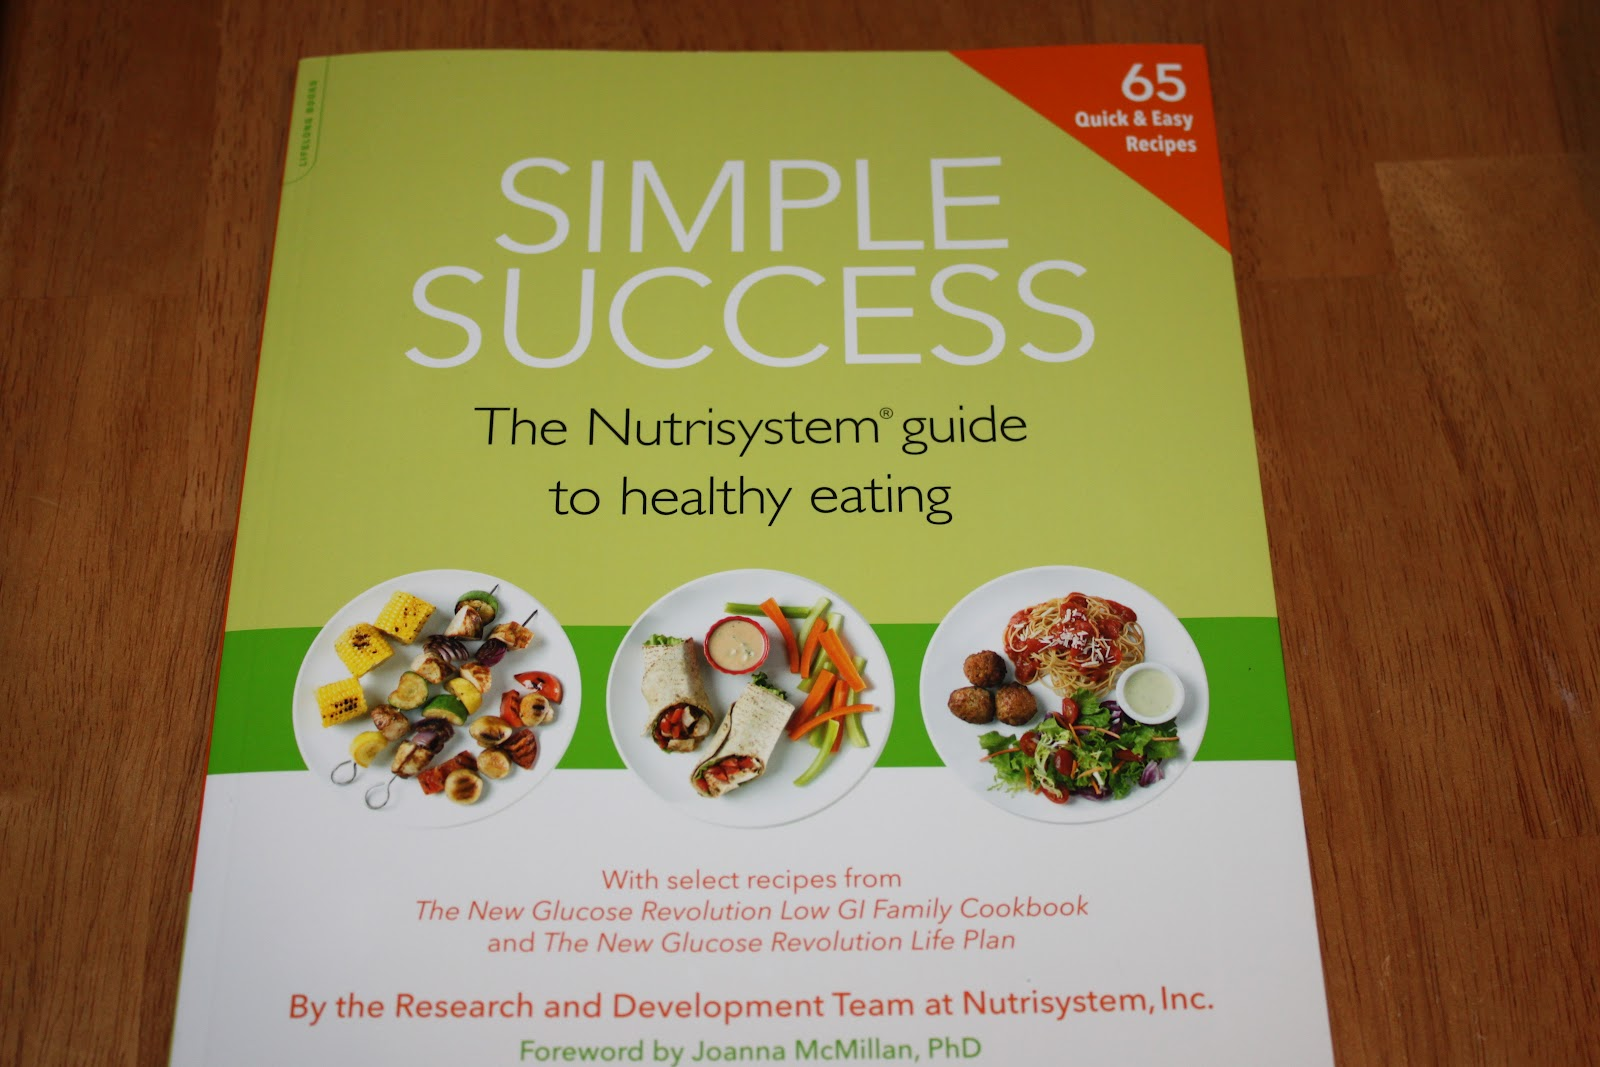 How to cook nutrisystem food lean cuisine vs nutrisystem it provides a diet plan the nutrisystems weight loss program is not something which just advices you what to eat and what to avoid it provides you with solutioingenieria Image collections